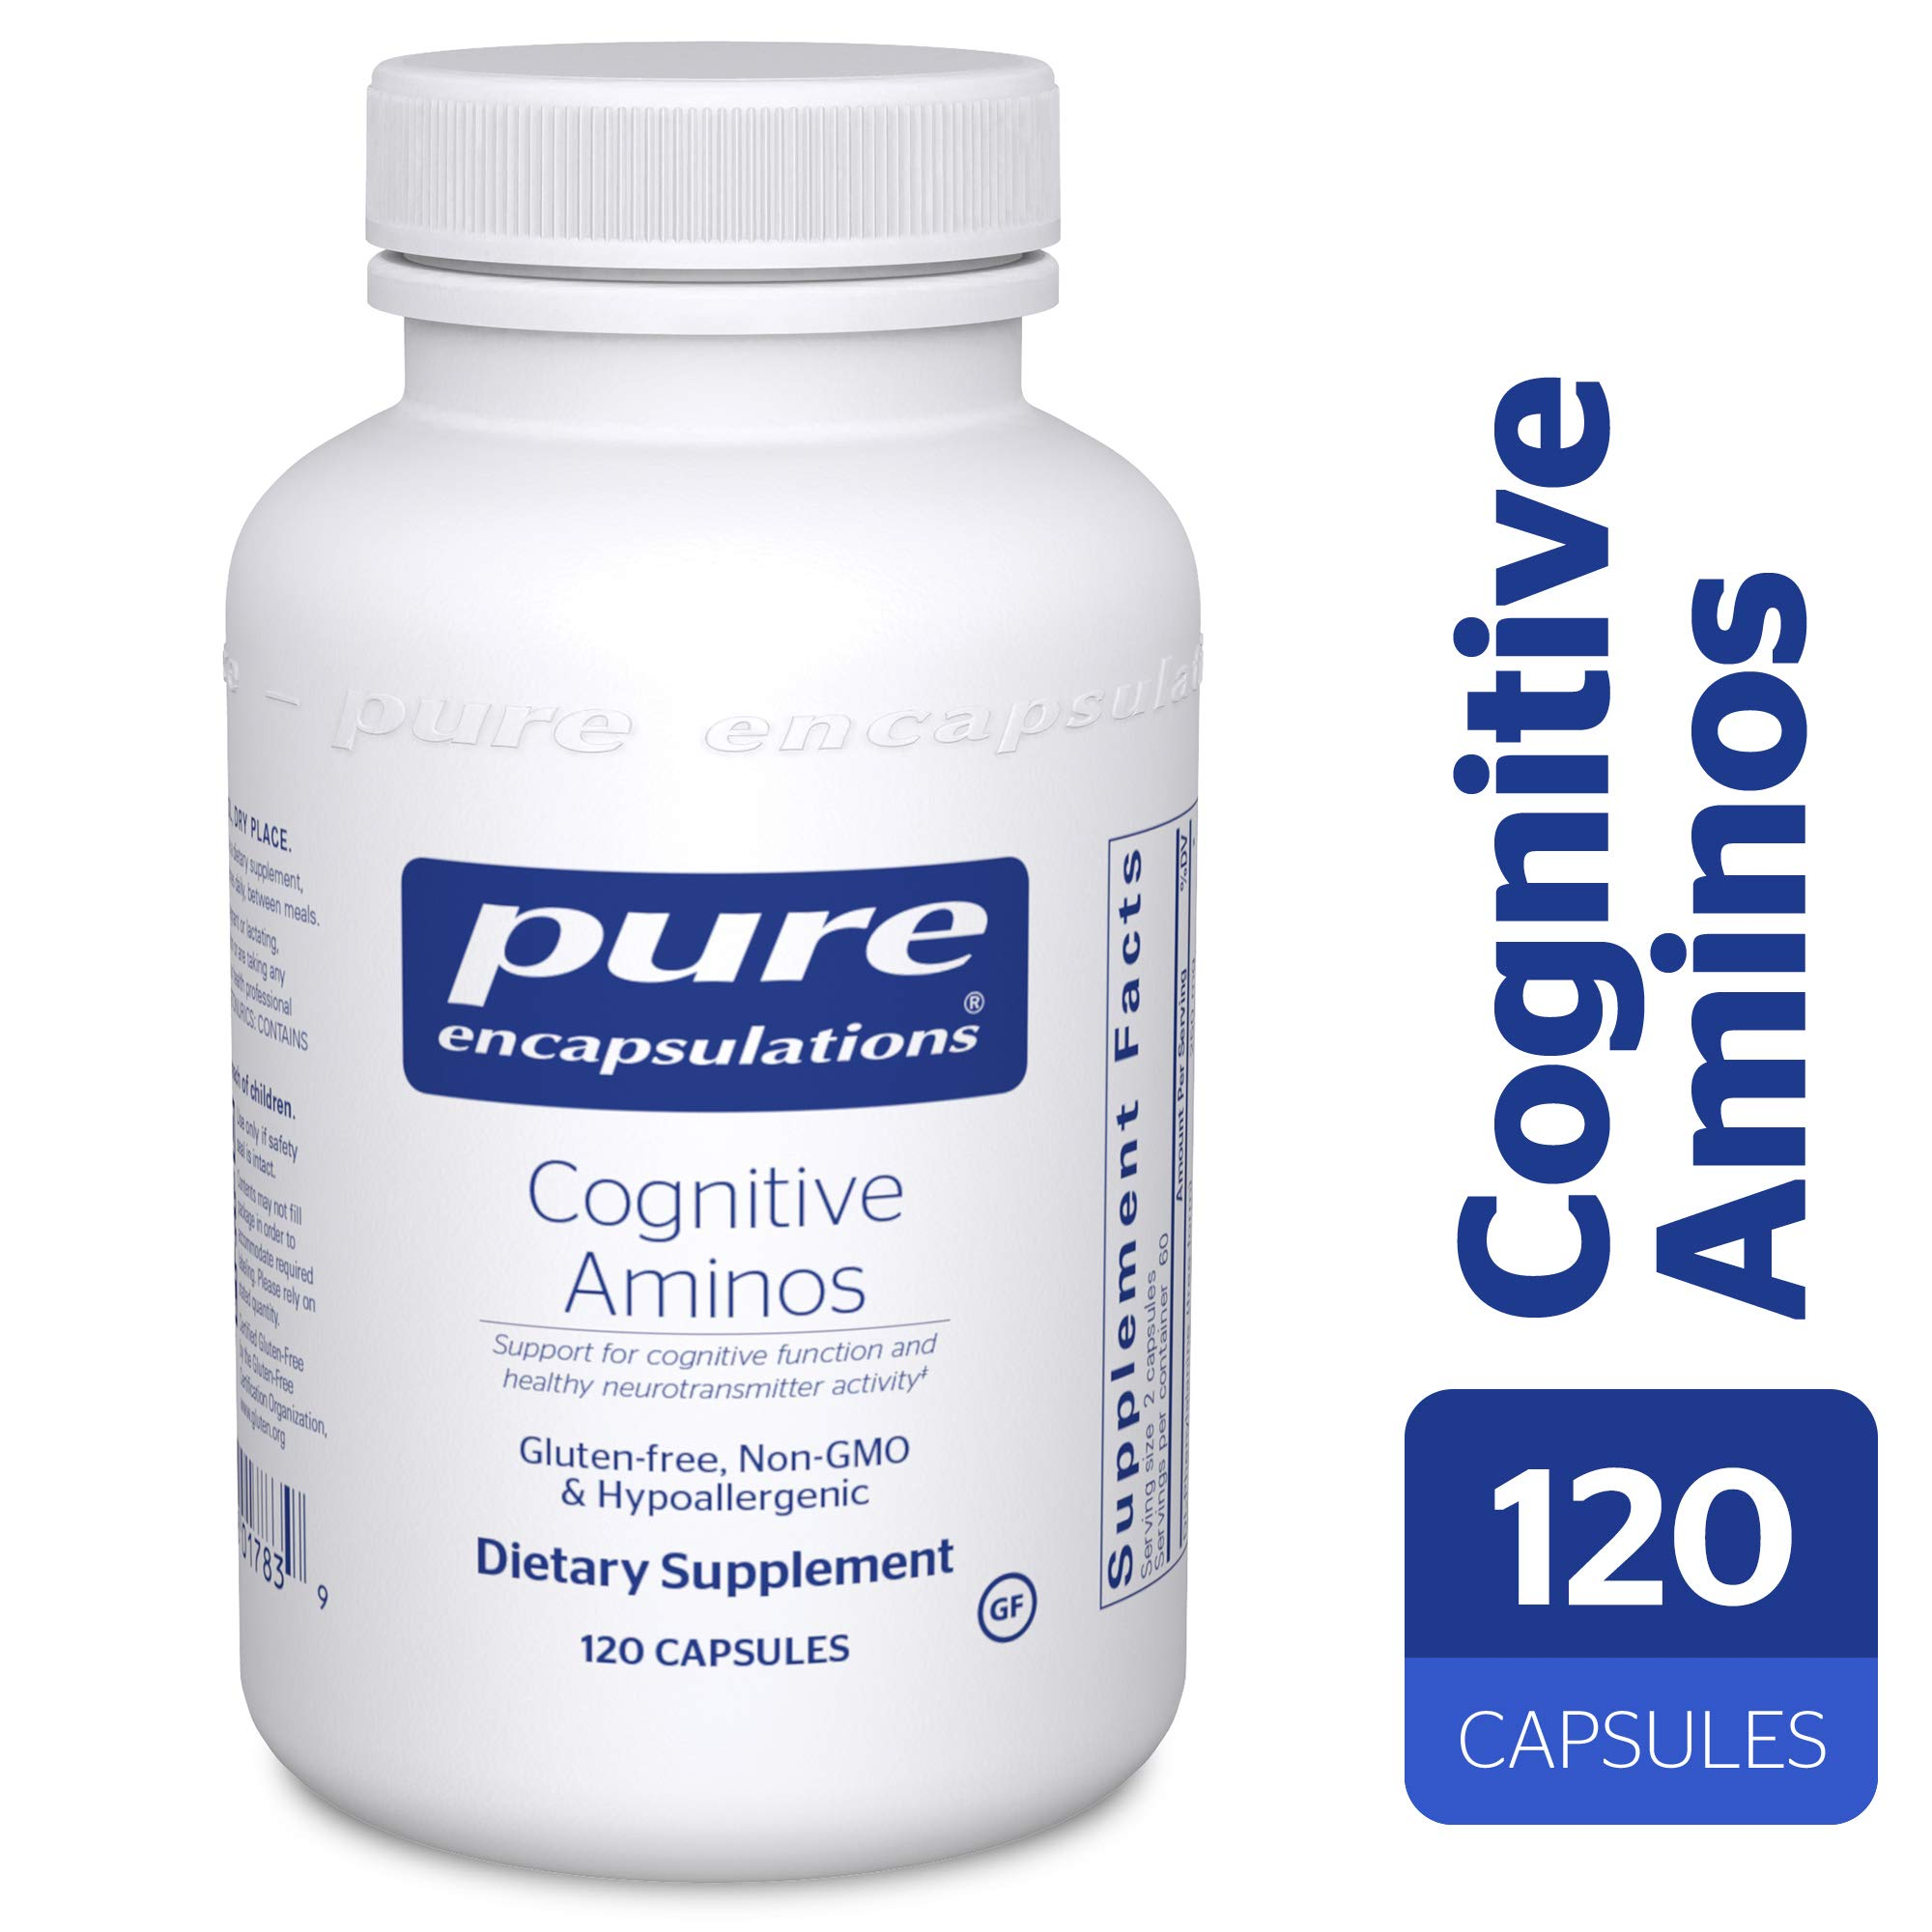 Pure Encapsulations - Cognitive Aminos - Hypoallergenic Supplement for Cognitive Function Support* - 120 Capsules